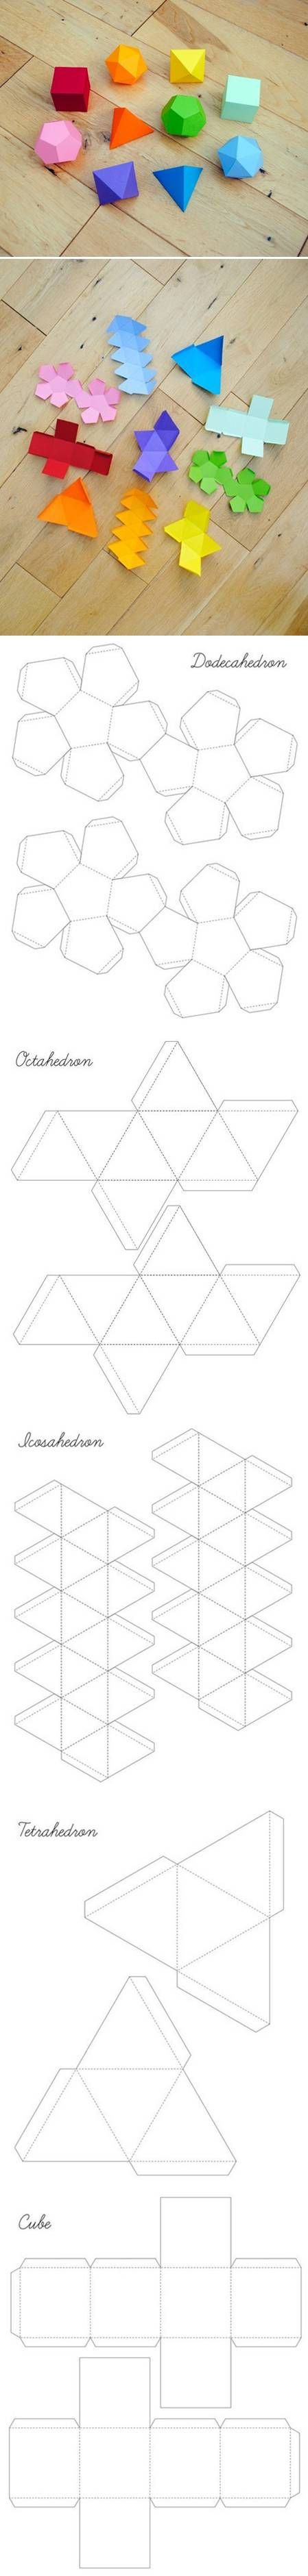 i mathematics platonic solids garland bastelt pinterest origami basteln und basteln. Black Bedroom Furniture Sets. Home Design Ideas